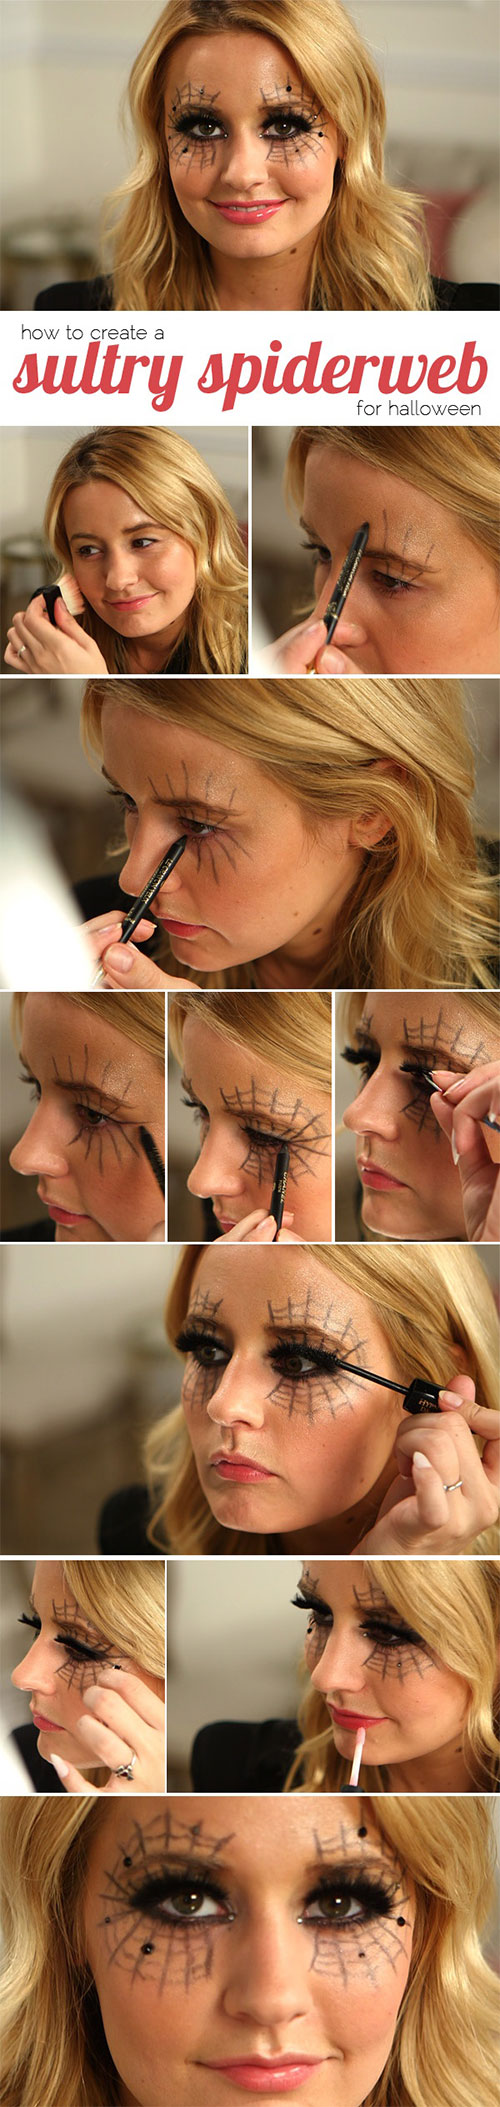 15-Step-By-Step-Halloween-Make-Up-Tutorials-For-Beginners-Learners-2014-12